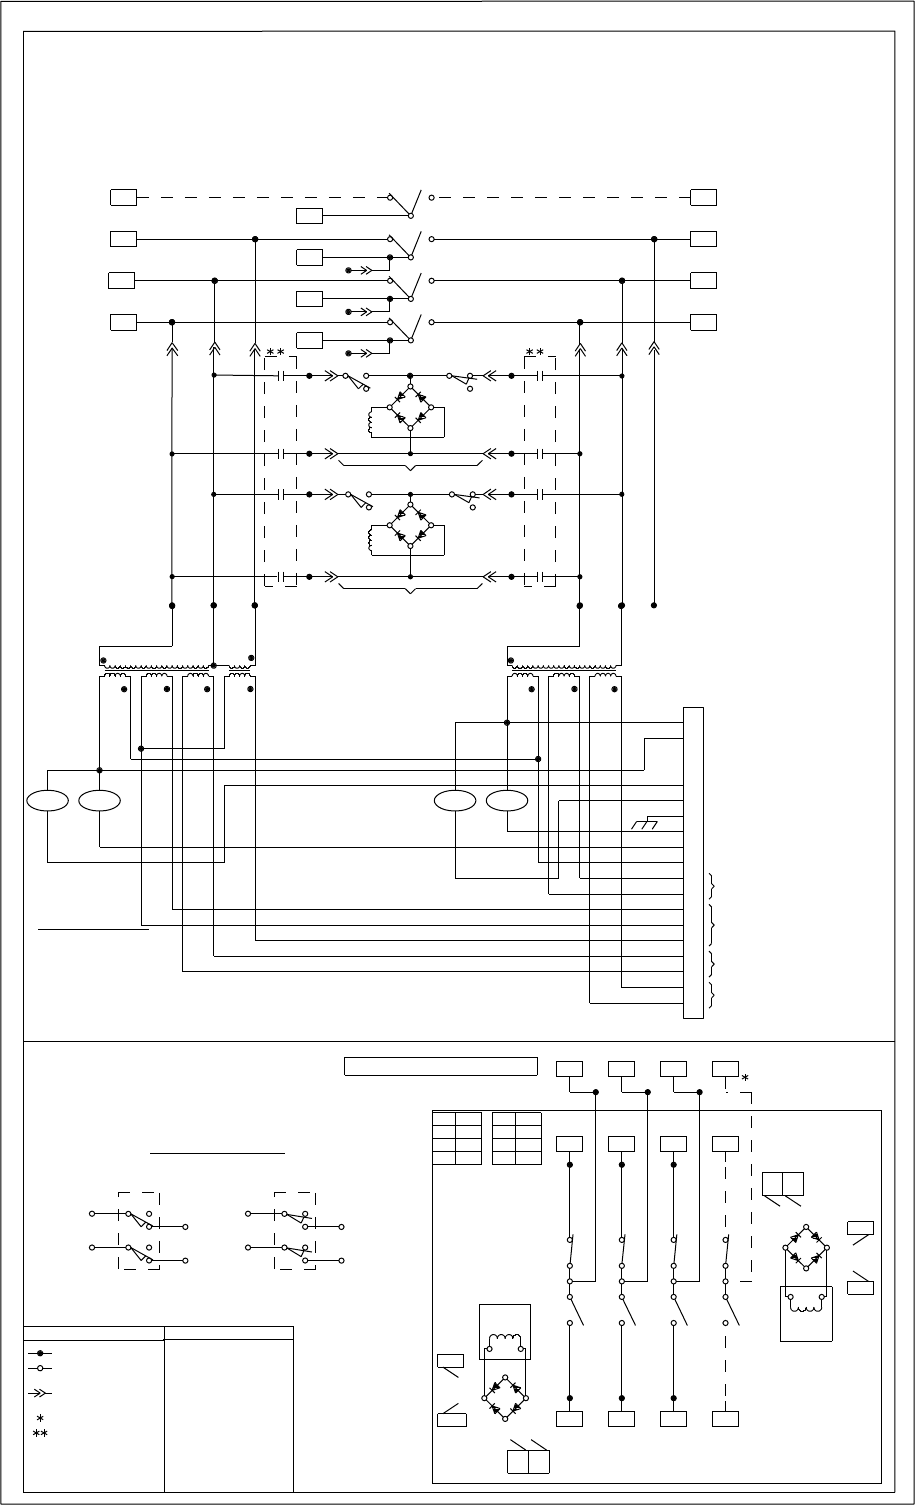 CTG AND CTGD AUTOMATIC TRANSFER SWITCH (ATS) ELECTRICAL SYSTEM   CAT  Machines Electrical SchematicCAT Machines Electrical Schematic